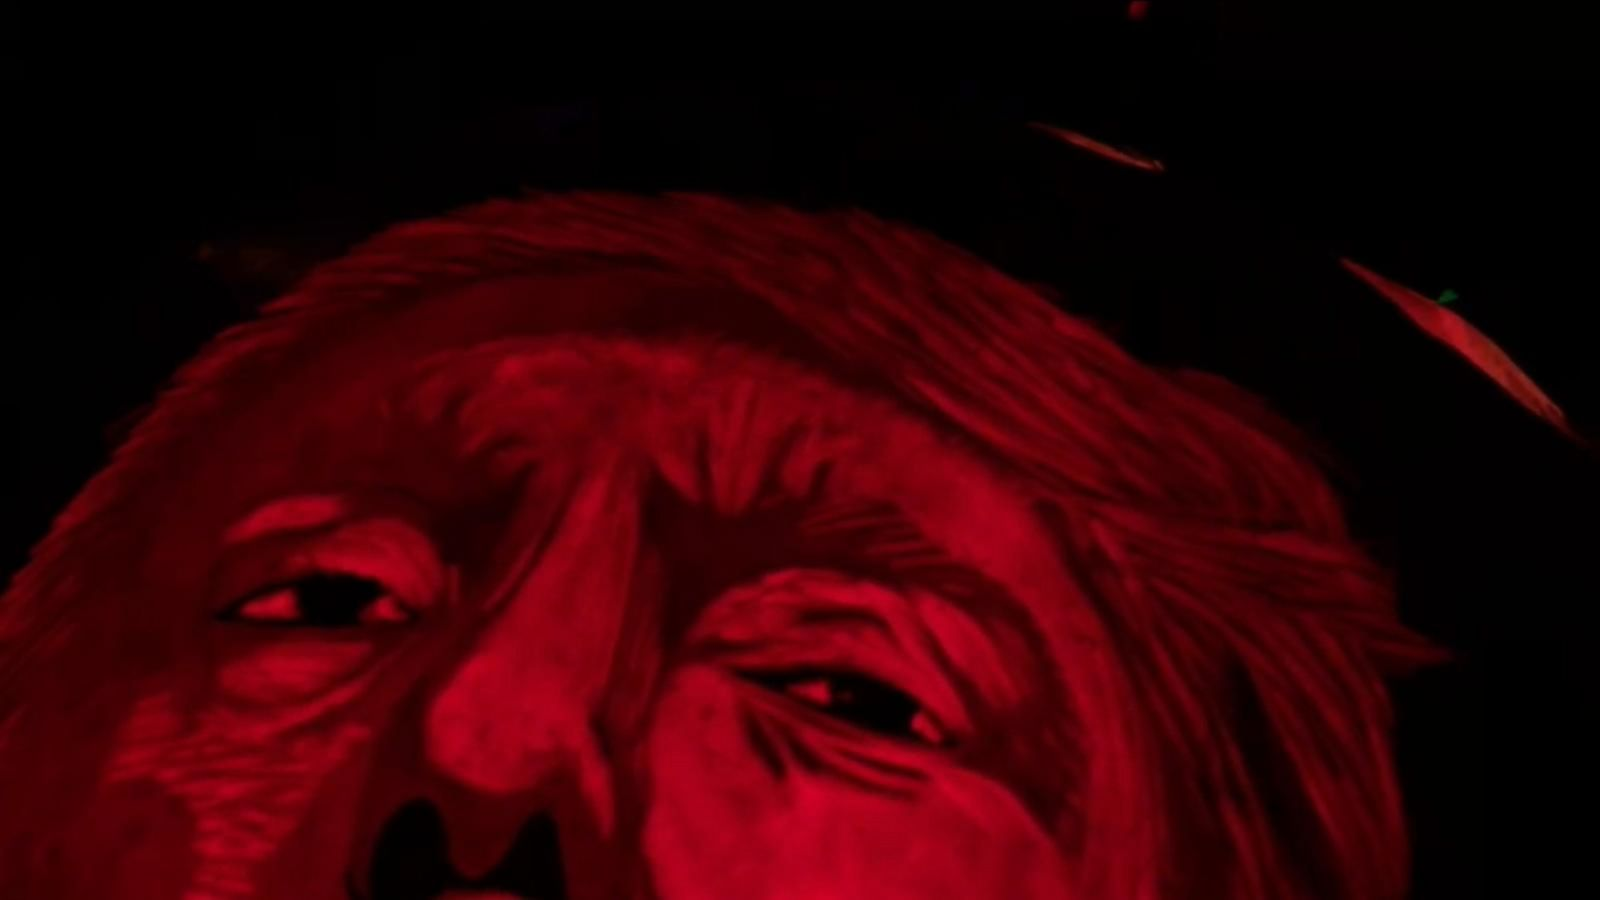 VIDEO: Political Jack O'Lanterns on Display for Halloween